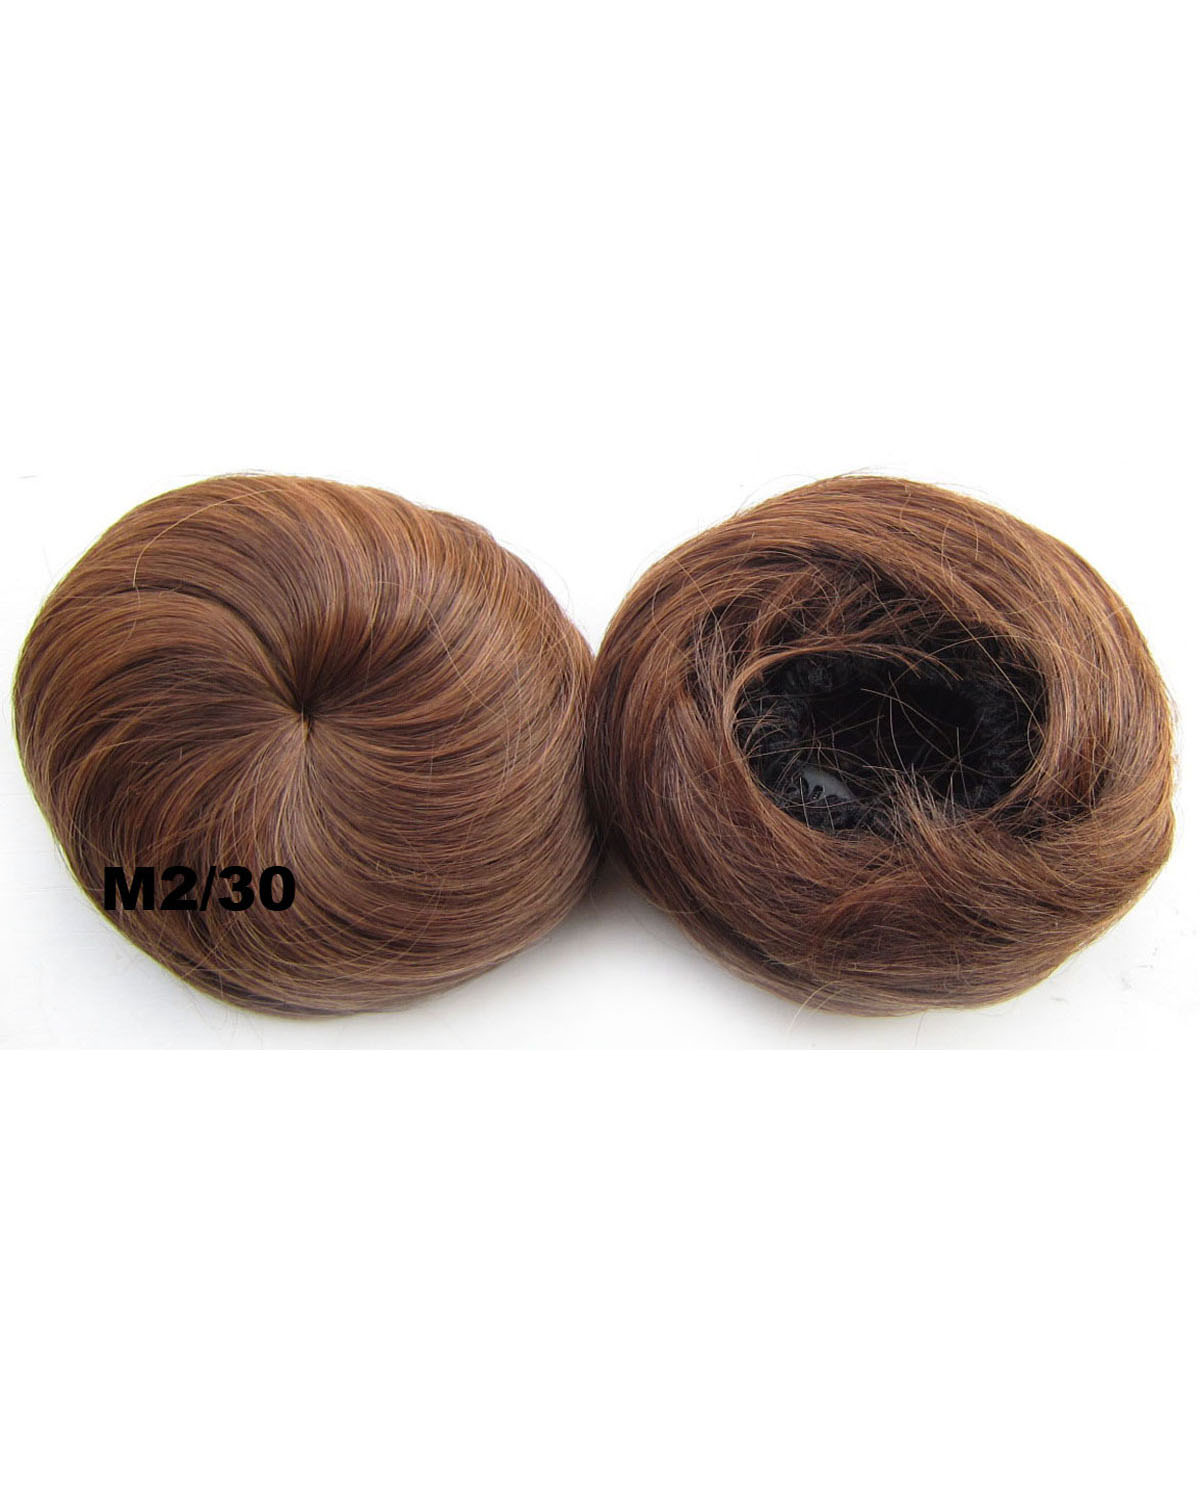 Ladies Silky Straight Short Hair Buns Drawstring Synthetic Hair Extension Bride Scrunchies  M2/30